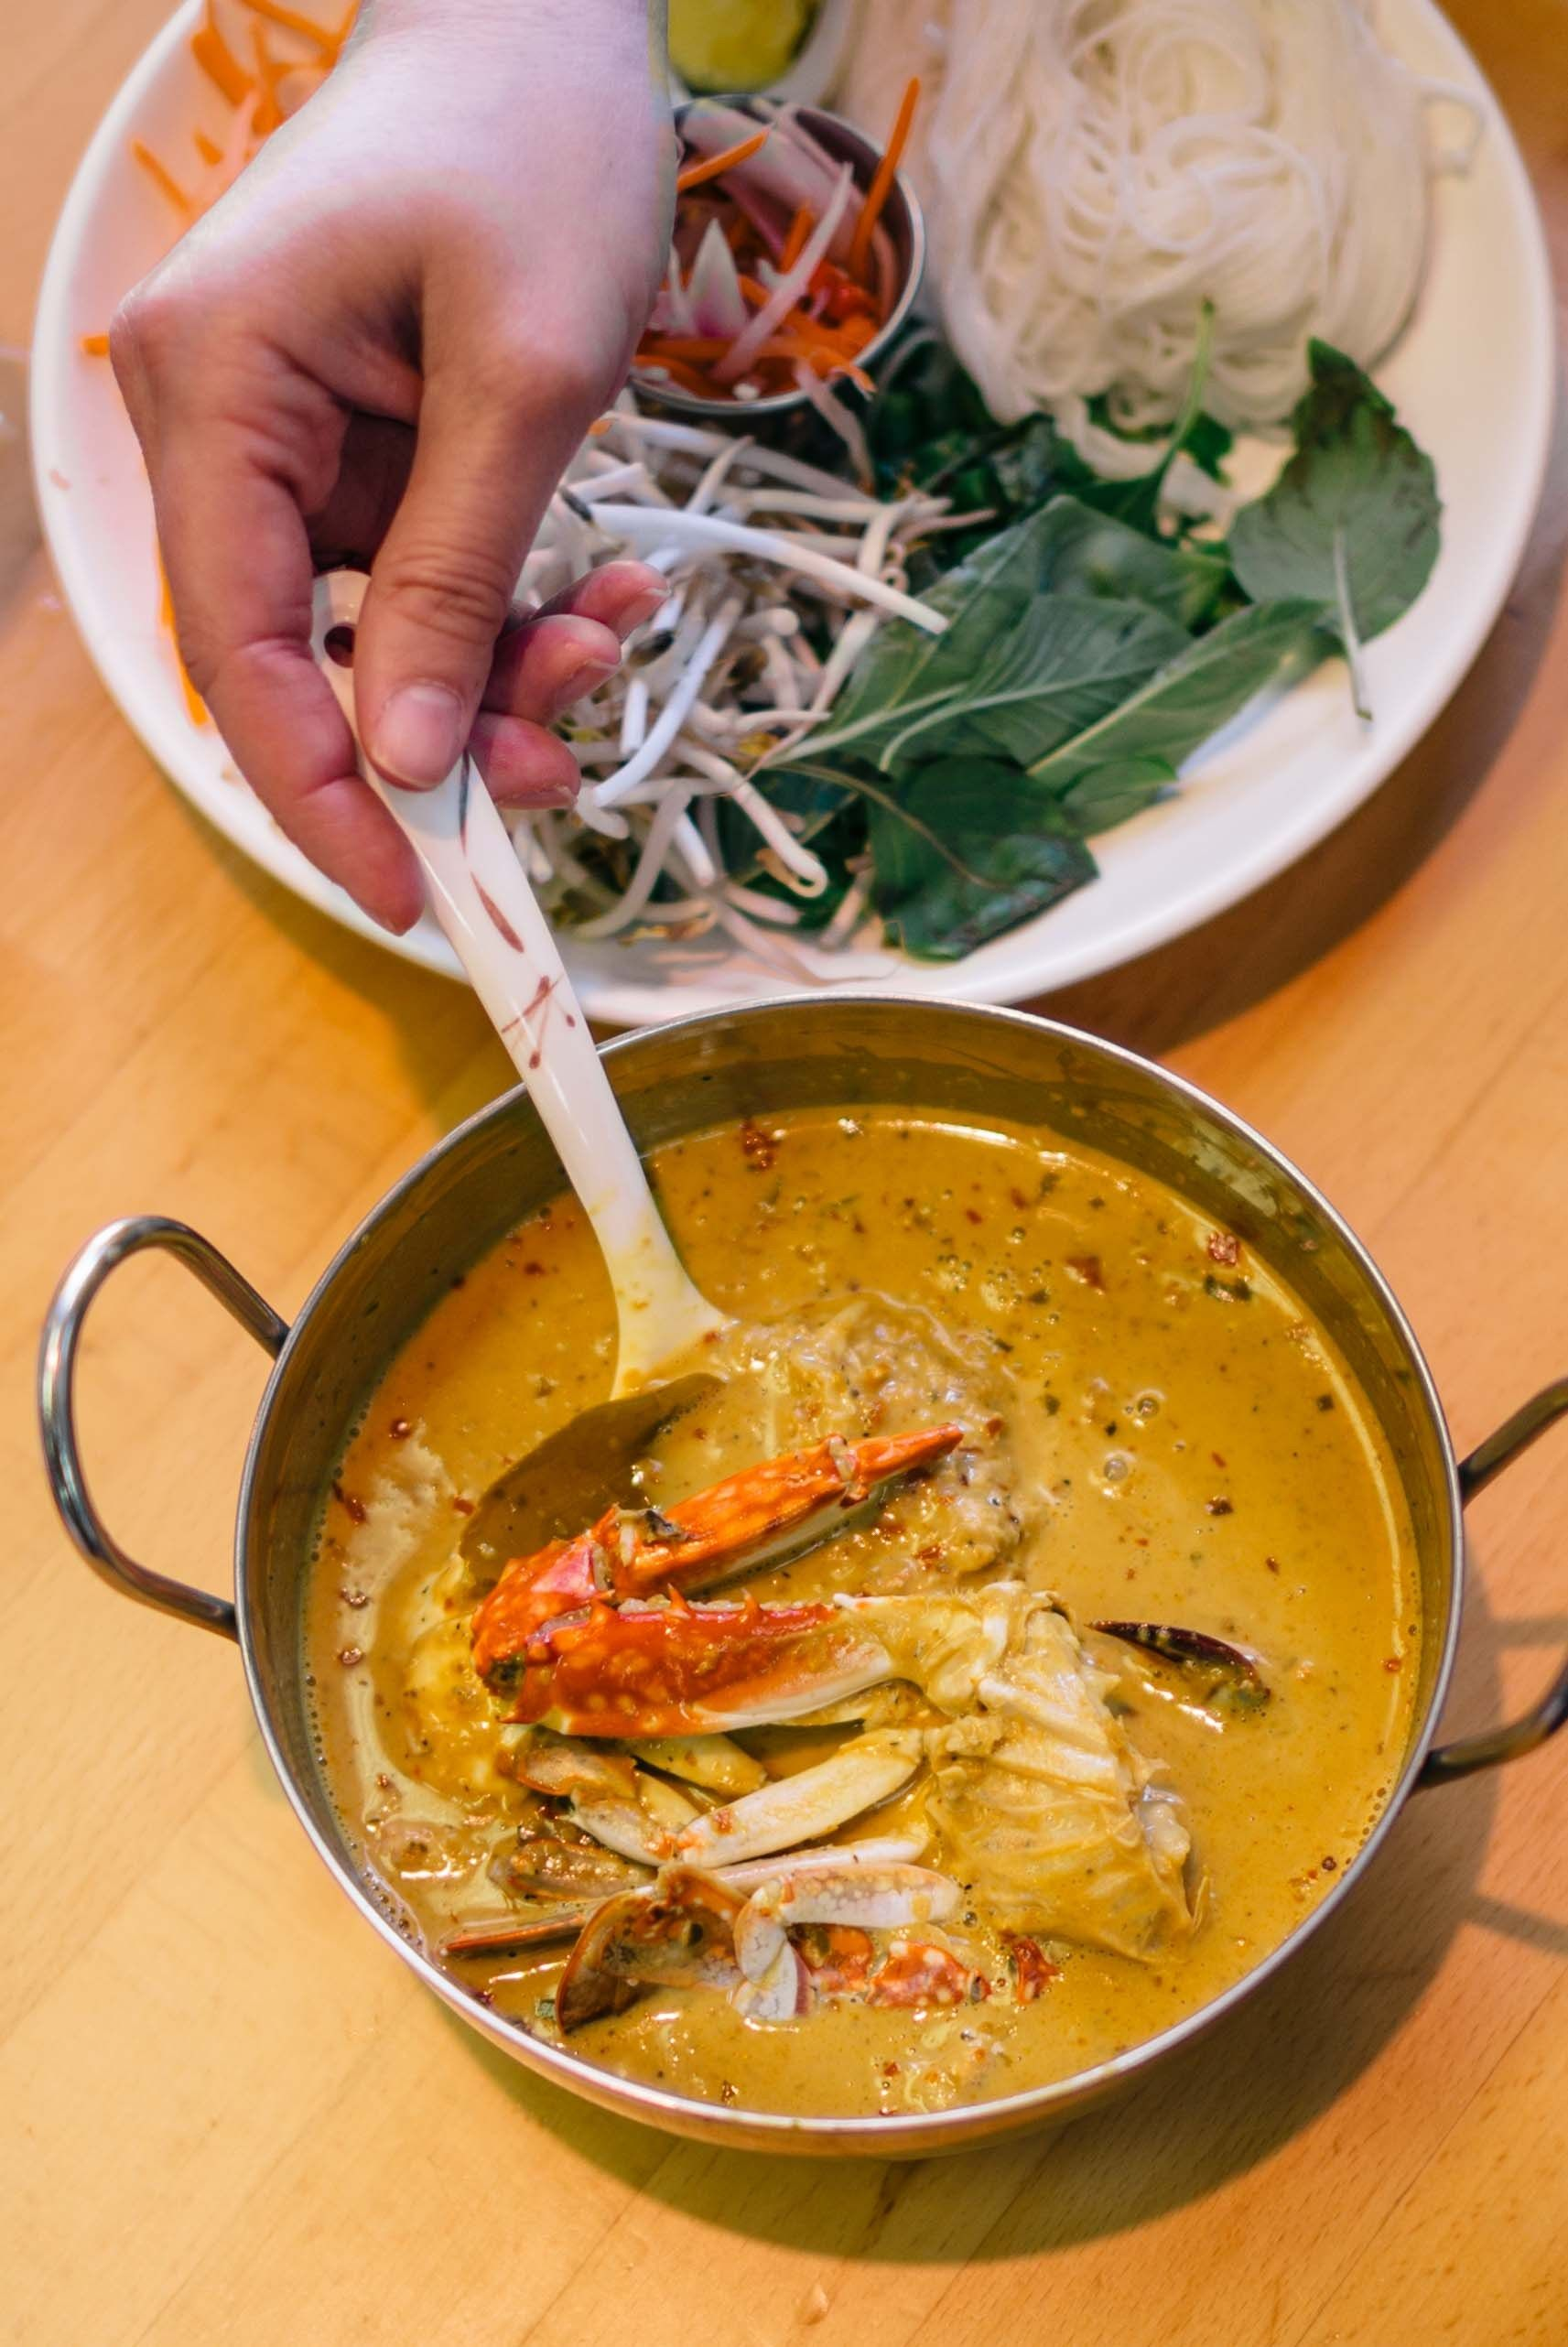 Luv2eat Is On Of The Best Thai Restaurants In La You Need To Order Y Et Style Crab Curry Served A Metal Bowl Filled With